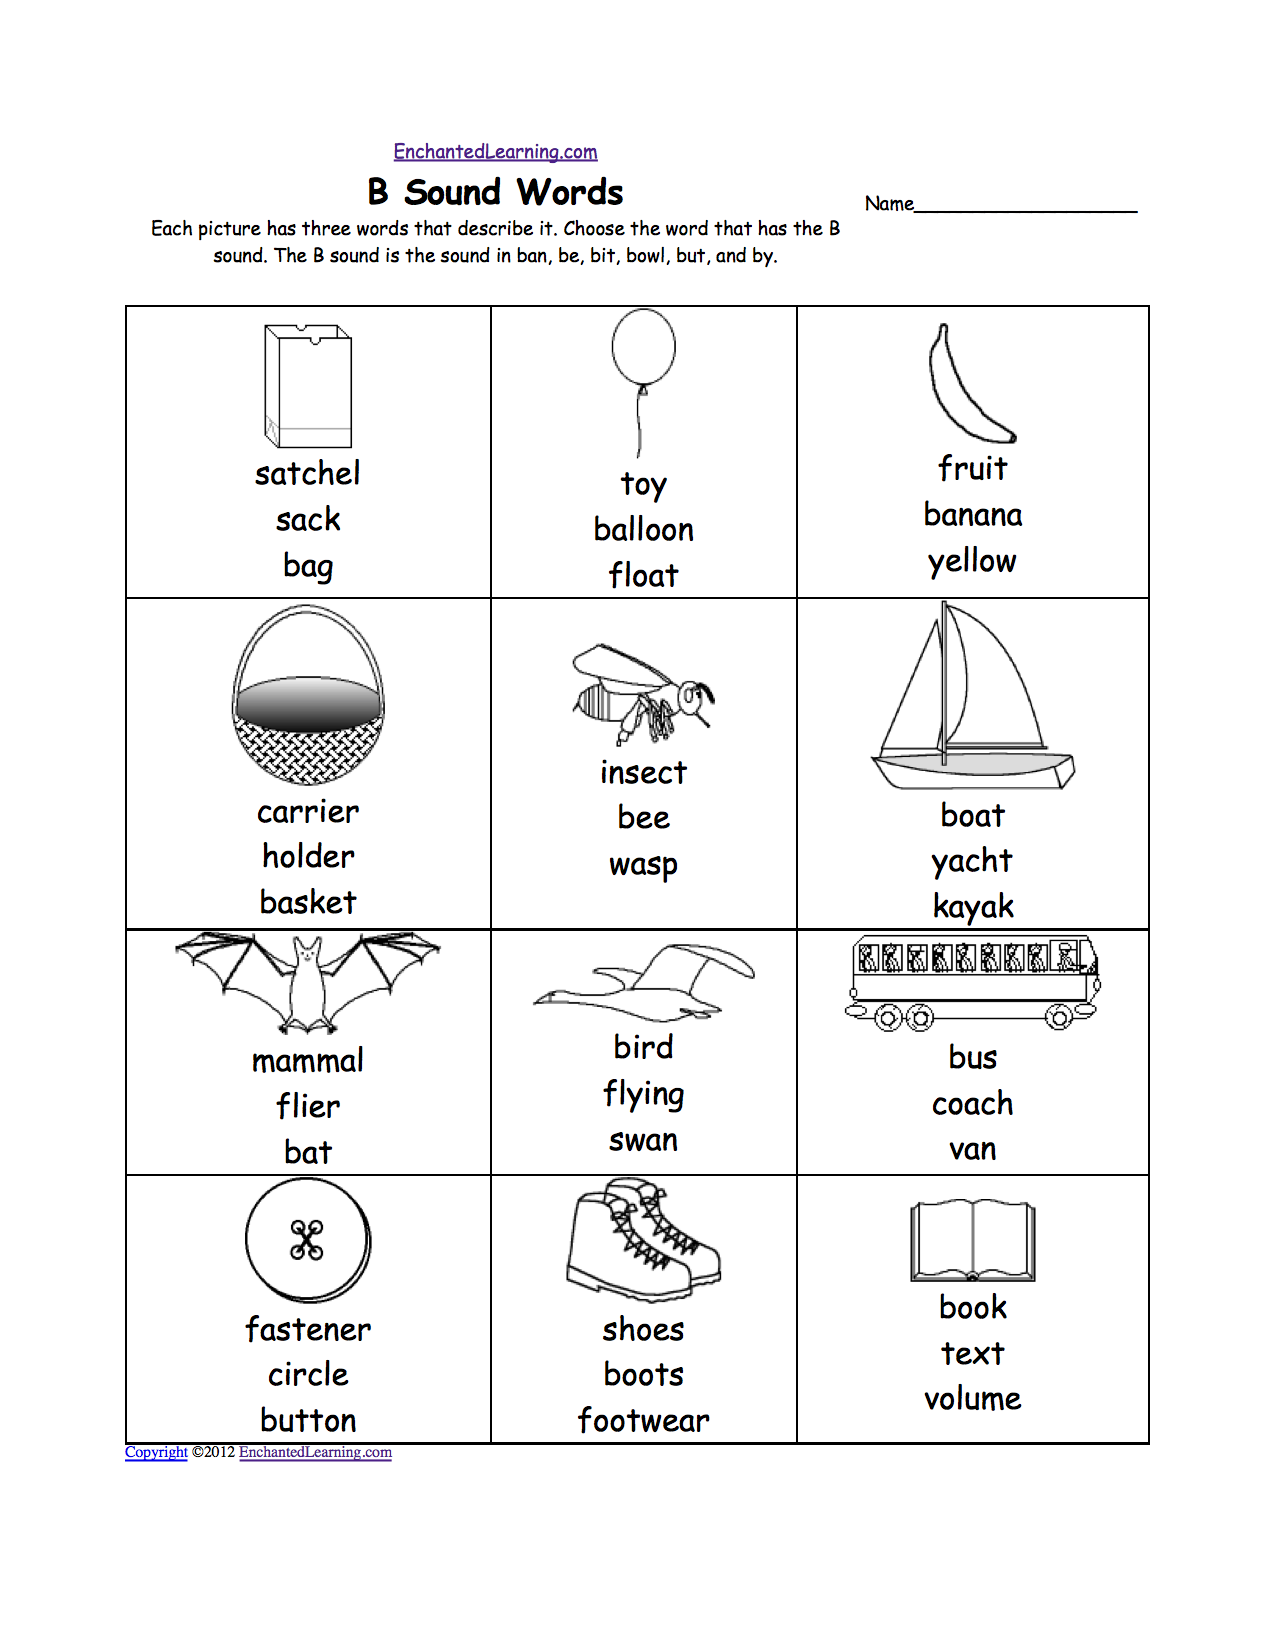 Weirdmailus  Terrific Phonics Worksheets Multiple Choice Worksheets To Print  With Outstanding Quotbquot Sound Phonics Worksheet Multiple Choice Each Picture Has Three Words That Describe It Choose The Word That Has A Quotbquot Sound The Quotbquot Sound Is The Sound  With Enchanting Latitude And Longitude Worksheets For Th Grade Also Limited And Unlimited Government Worksheet In Addition Math Coloring Worksheets Multiplication And Asymptote Worksheet As Well As Add Subtract Mixed Numbers Worksheet Additionally Make A Line Plot Worksheet From Enchantedlearningcom With Weirdmailus  Outstanding Phonics Worksheets Multiple Choice Worksheets To Print  With Enchanting Quotbquot Sound Phonics Worksheet Multiple Choice Each Picture Has Three Words That Describe It Choose The Word That Has A Quotbquot Sound The Quotbquot Sound Is The Sound  And Terrific Latitude And Longitude Worksheets For Th Grade Also Limited And Unlimited Government Worksheet In Addition Math Coloring Worksheets Multiplication From Enchantedlearningcom